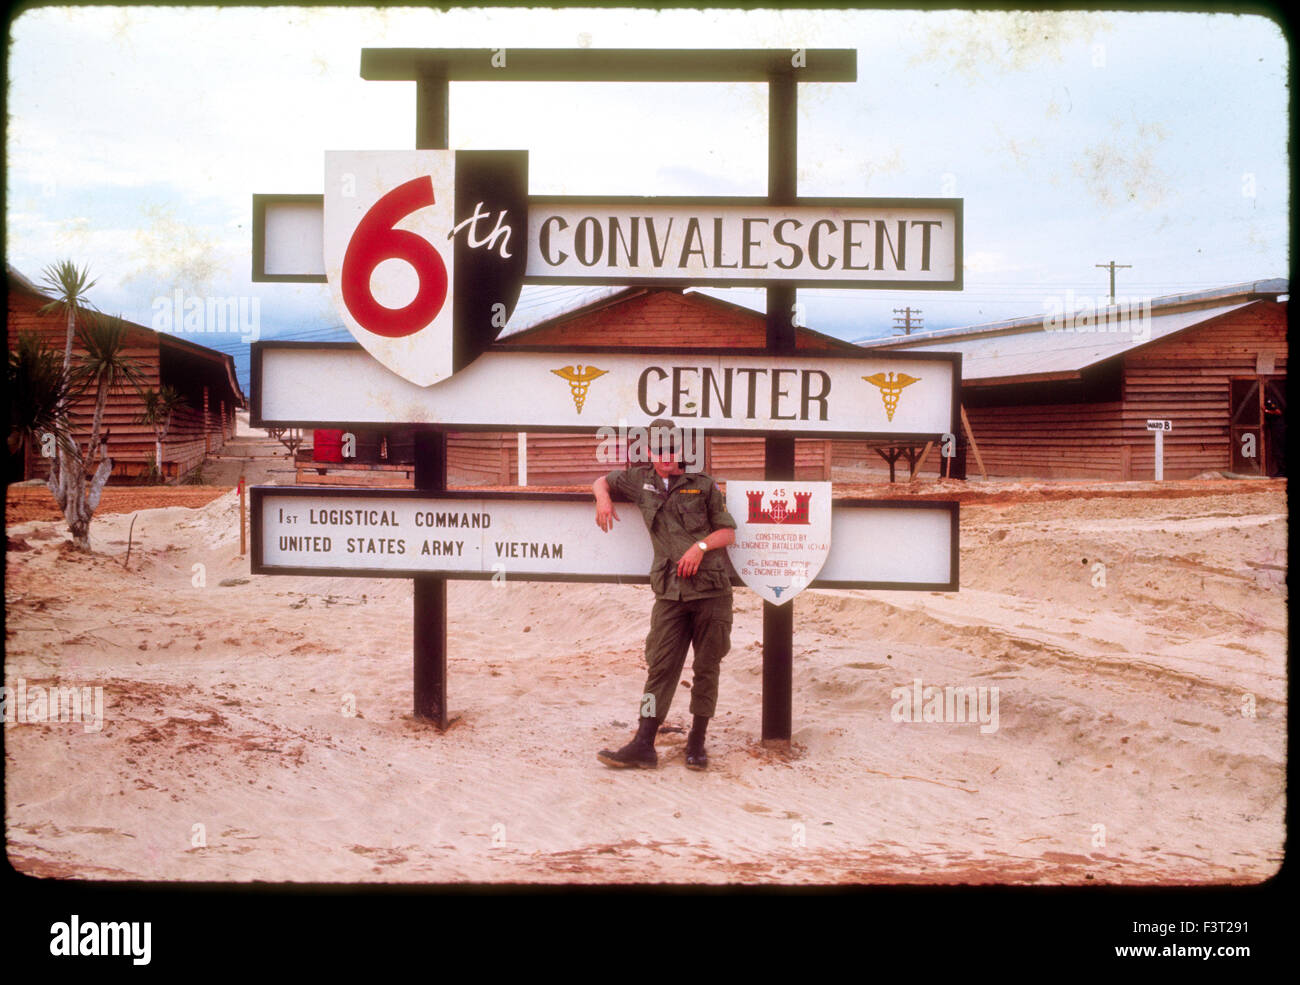 An American solider of the United States Army stands next to the sign for the 6th Convalescent Center at Cam Rahn - Stock Image